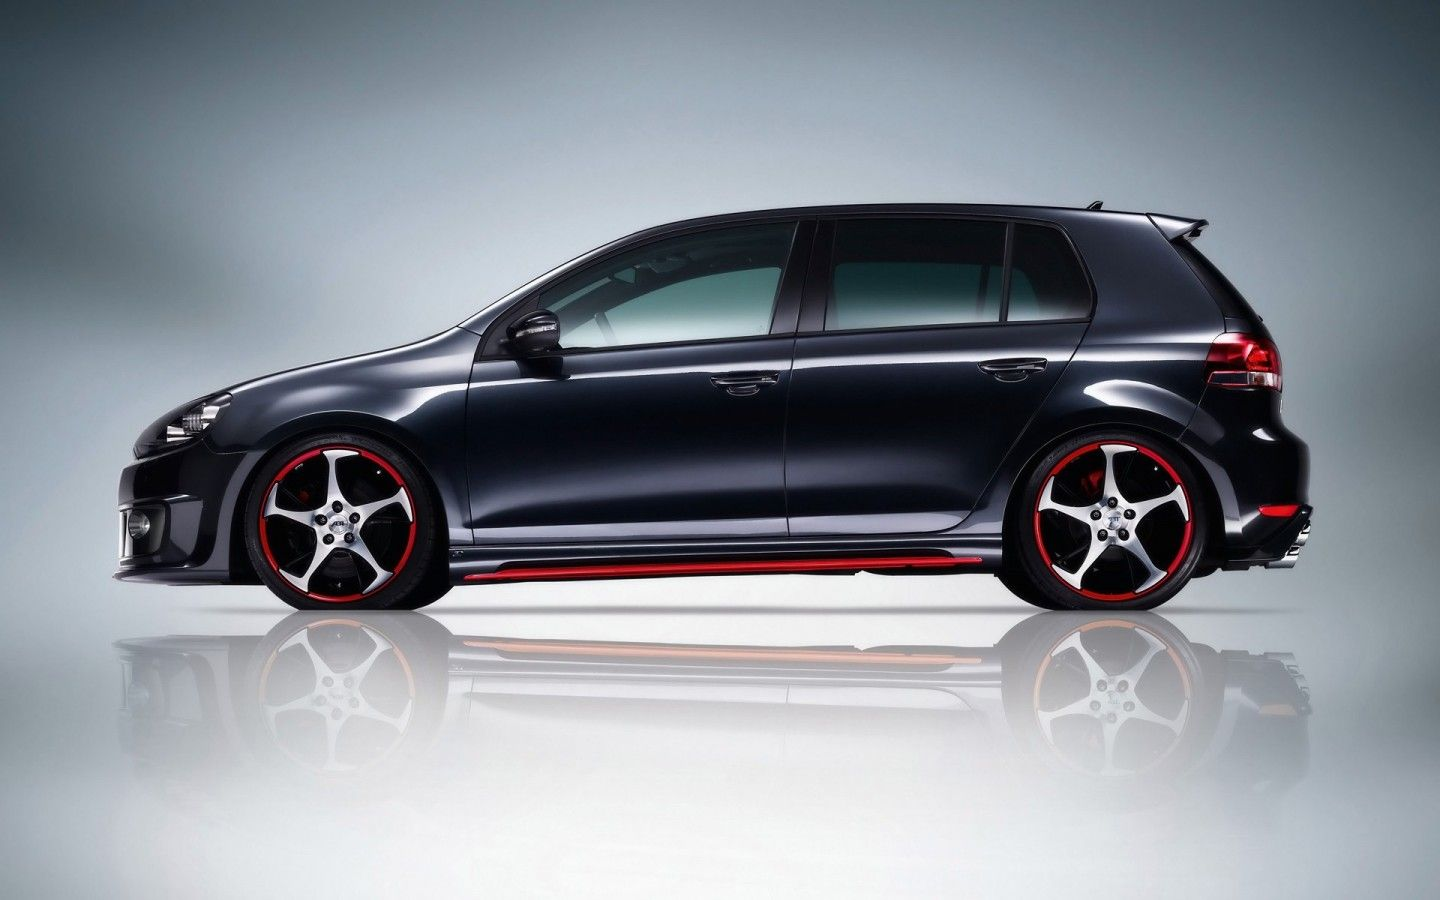 German Tuning Company ABT Sportsline Has Released The Last Edition Version Of Volkswagen Golf VI GTI At 2012 Essen Motor Show